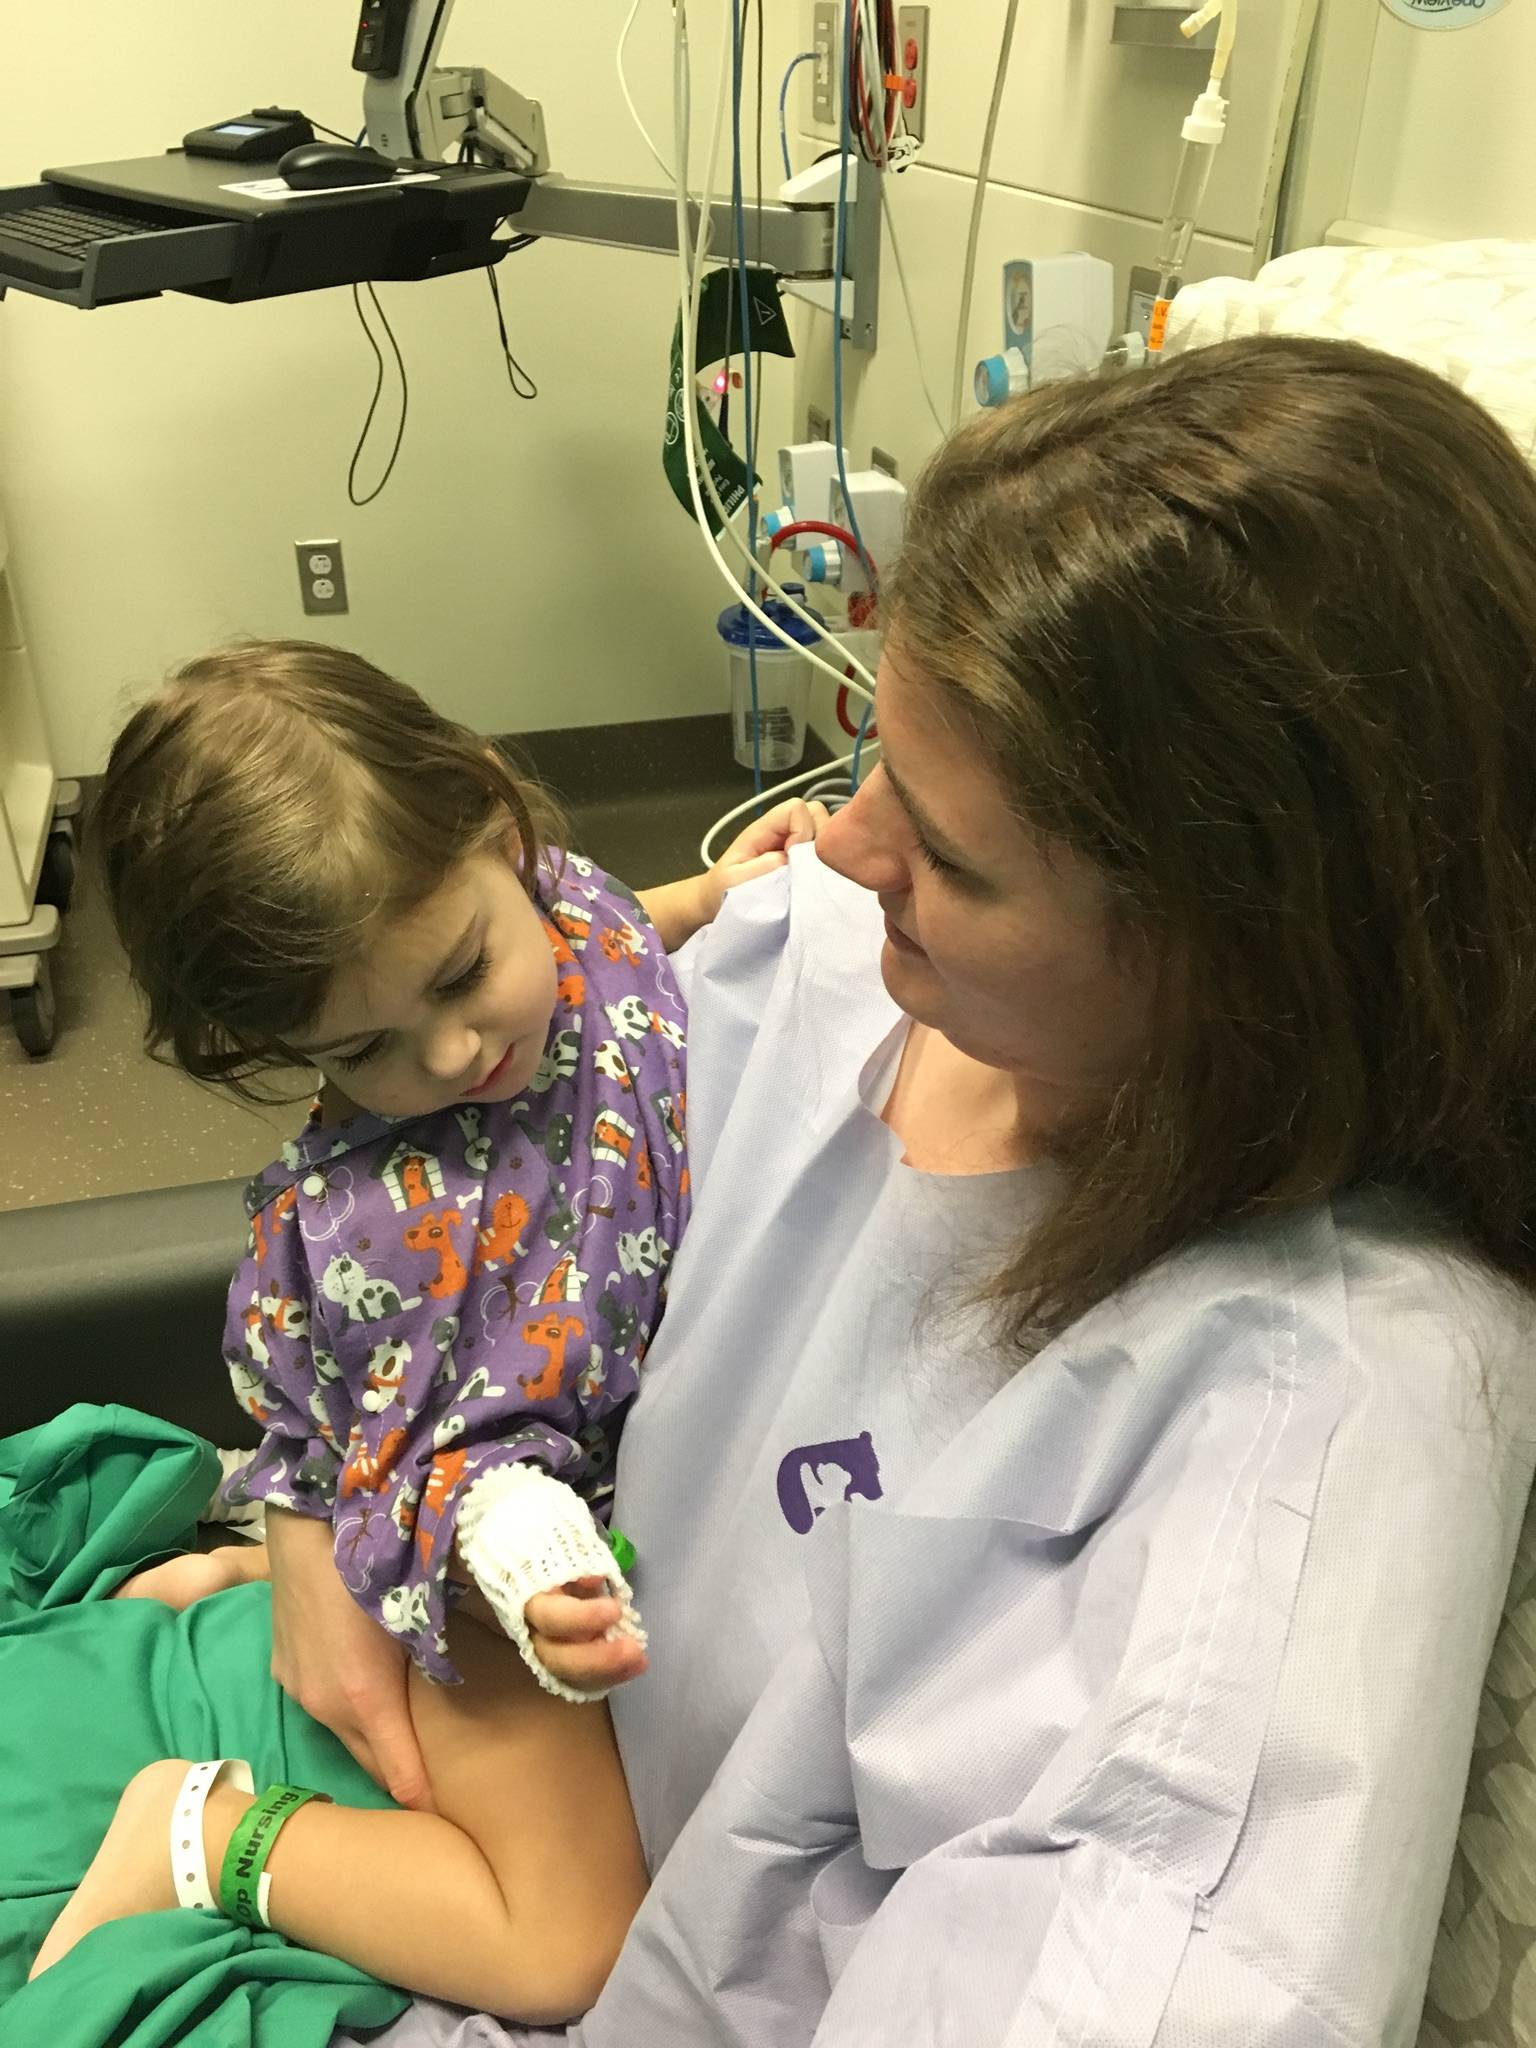 A photo of Rachel and her daughter Eva before their transplant surgeries. They are both wearing hospital gowns and waiting in a pre-op room.